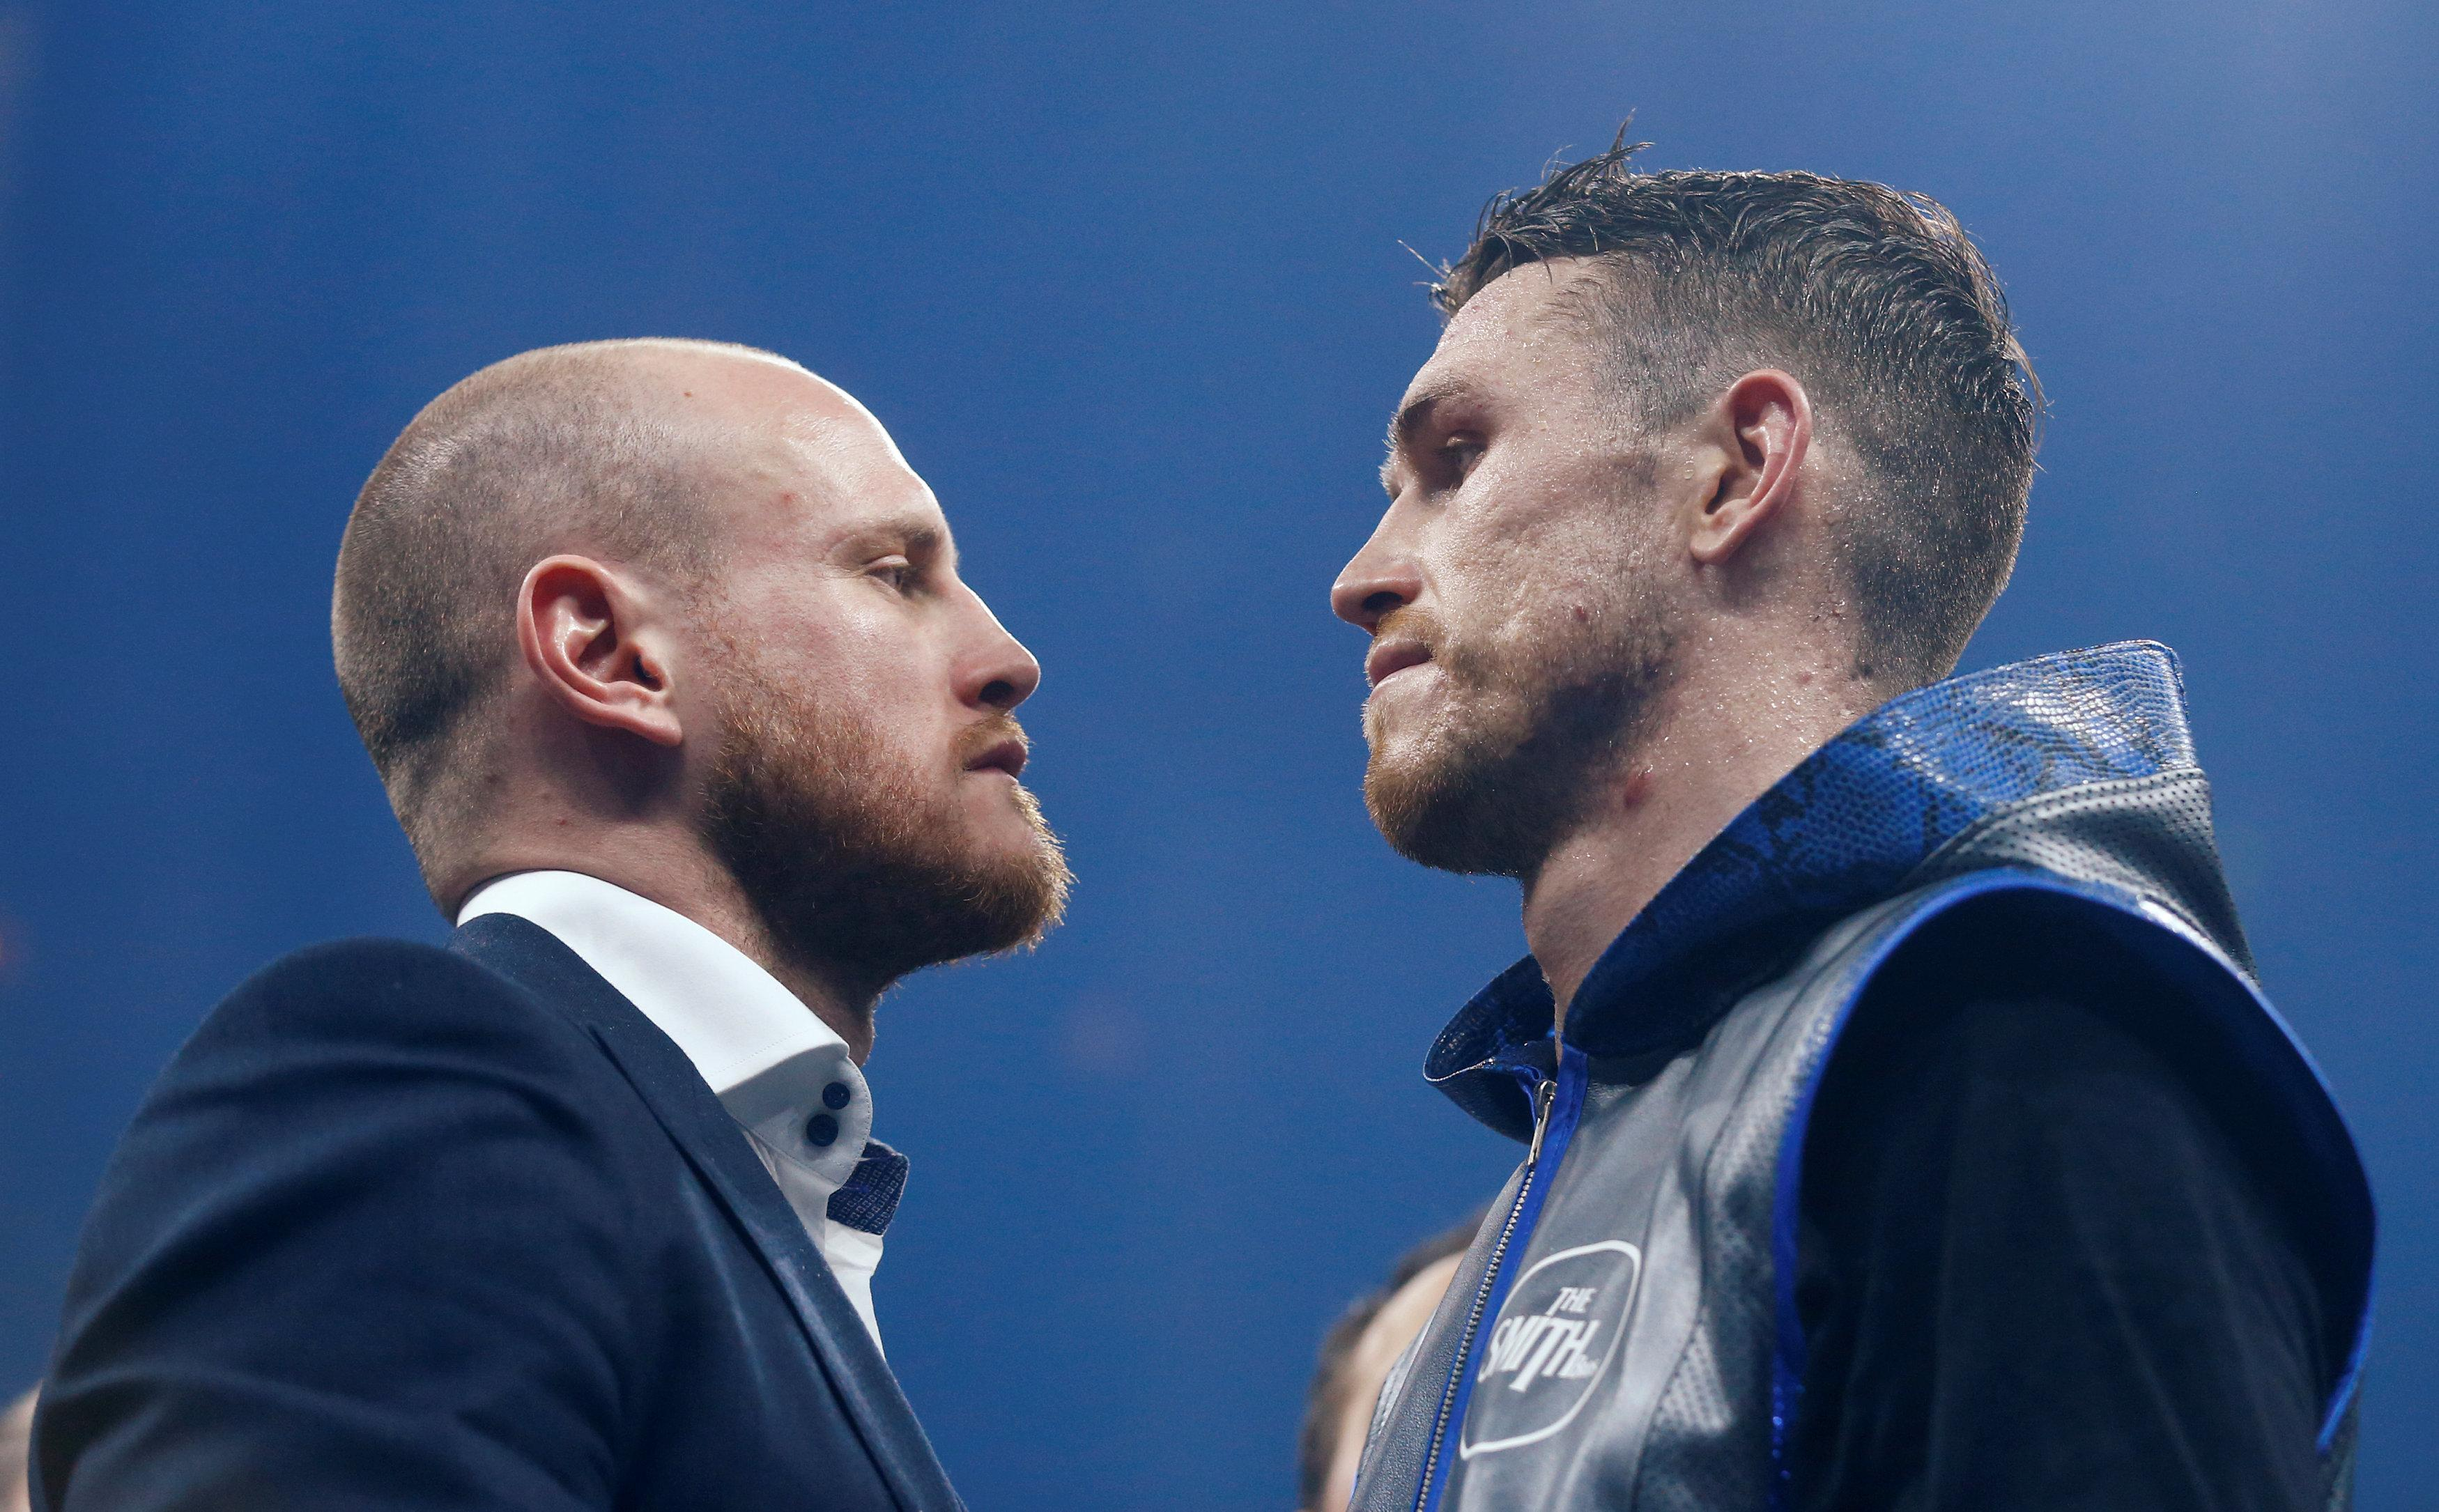 George Groves will defend his world title against Callum Smith on September 28 - but has been hit with a major injury